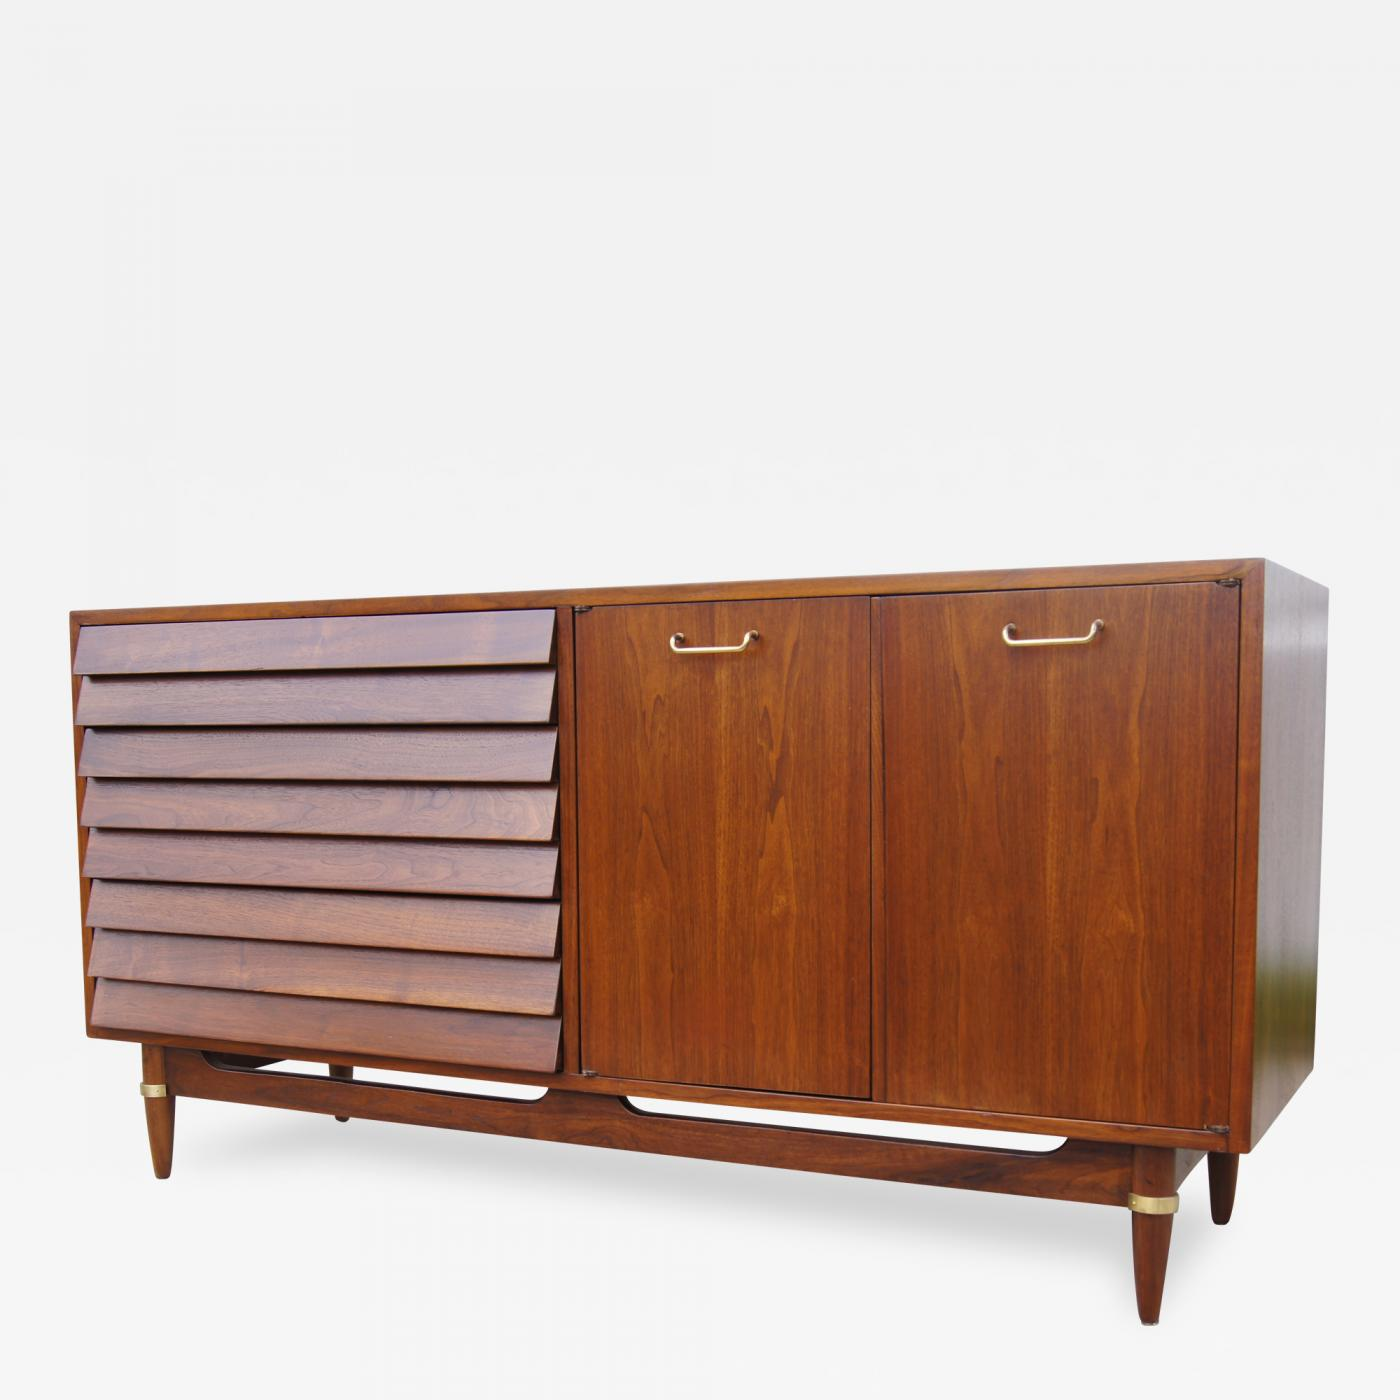 c10d6a064091 Merton Gershun - Sideboard by Merton Gershun for American of Martinsville